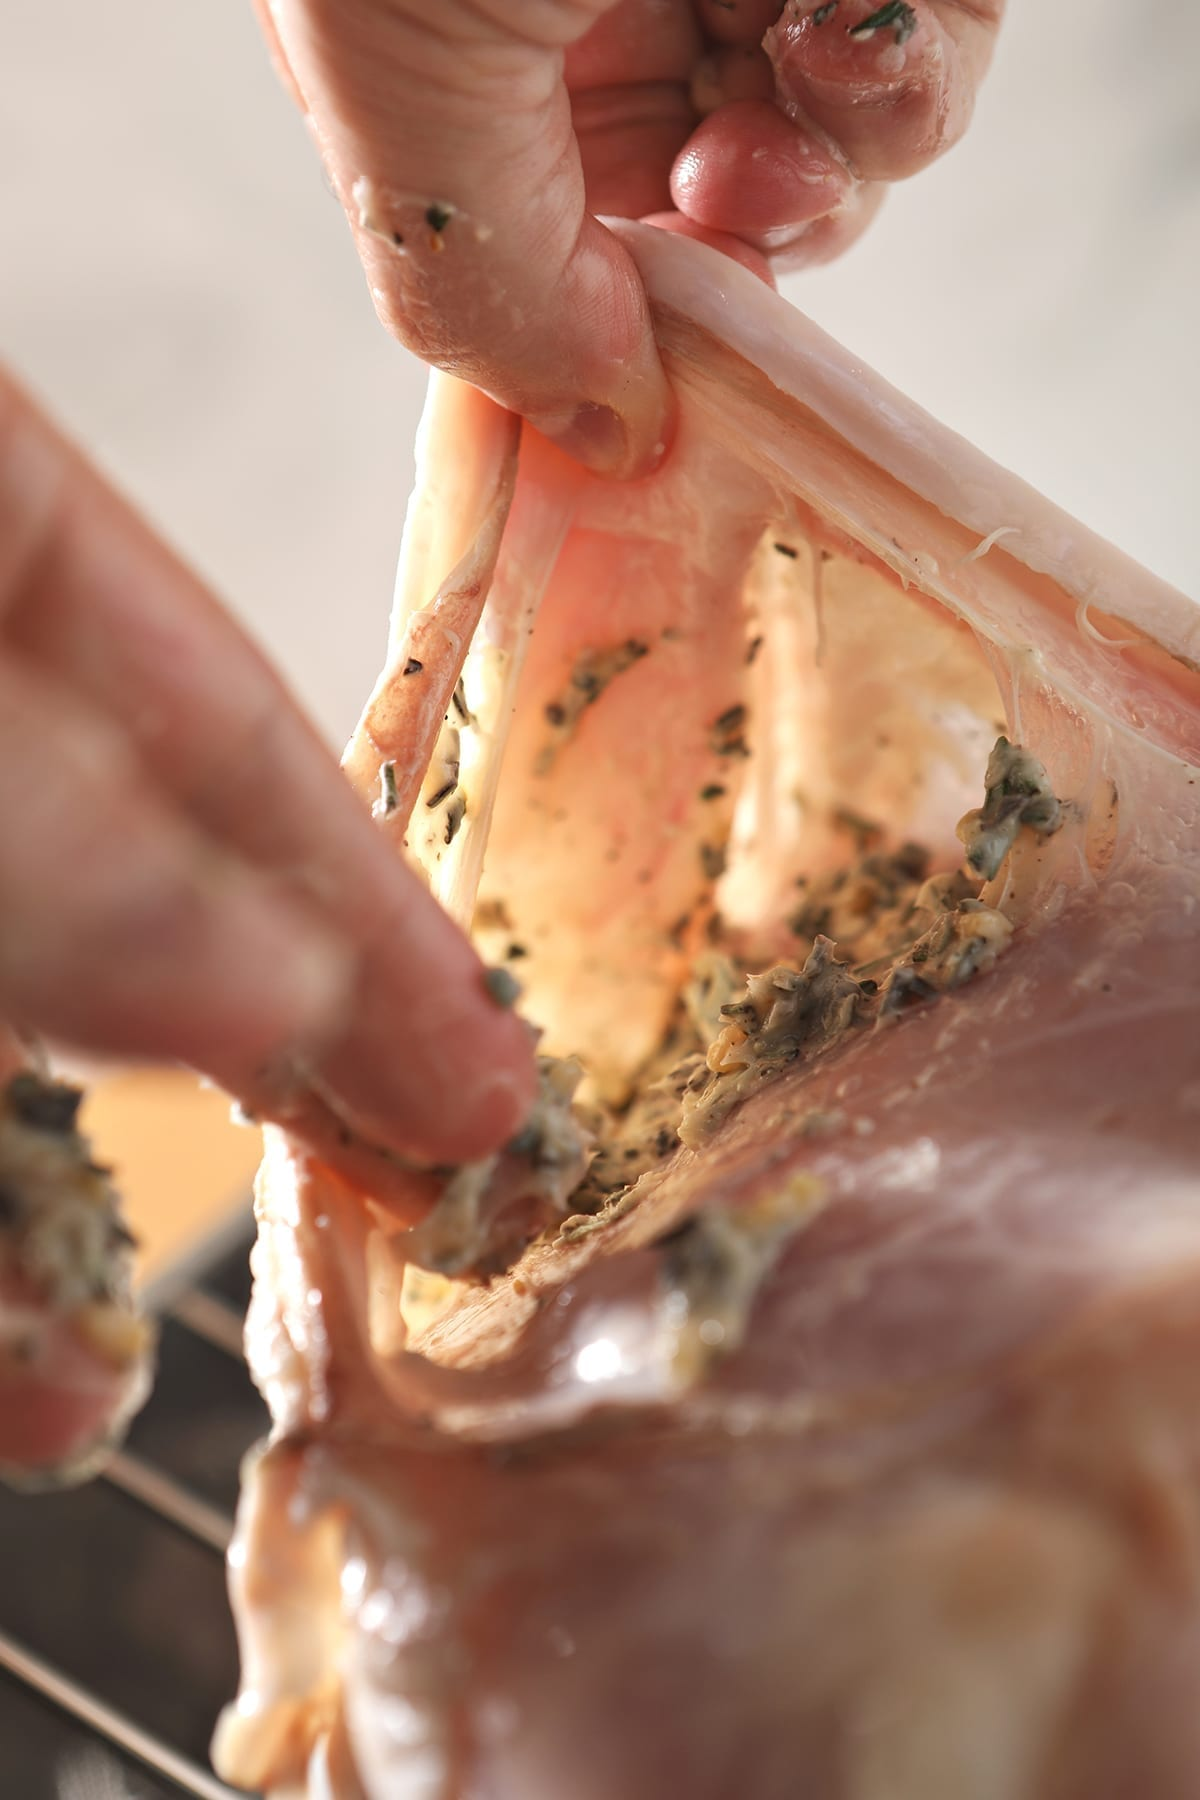 Two hands hold up and rub herb butter beneath the skin of a turkey breast